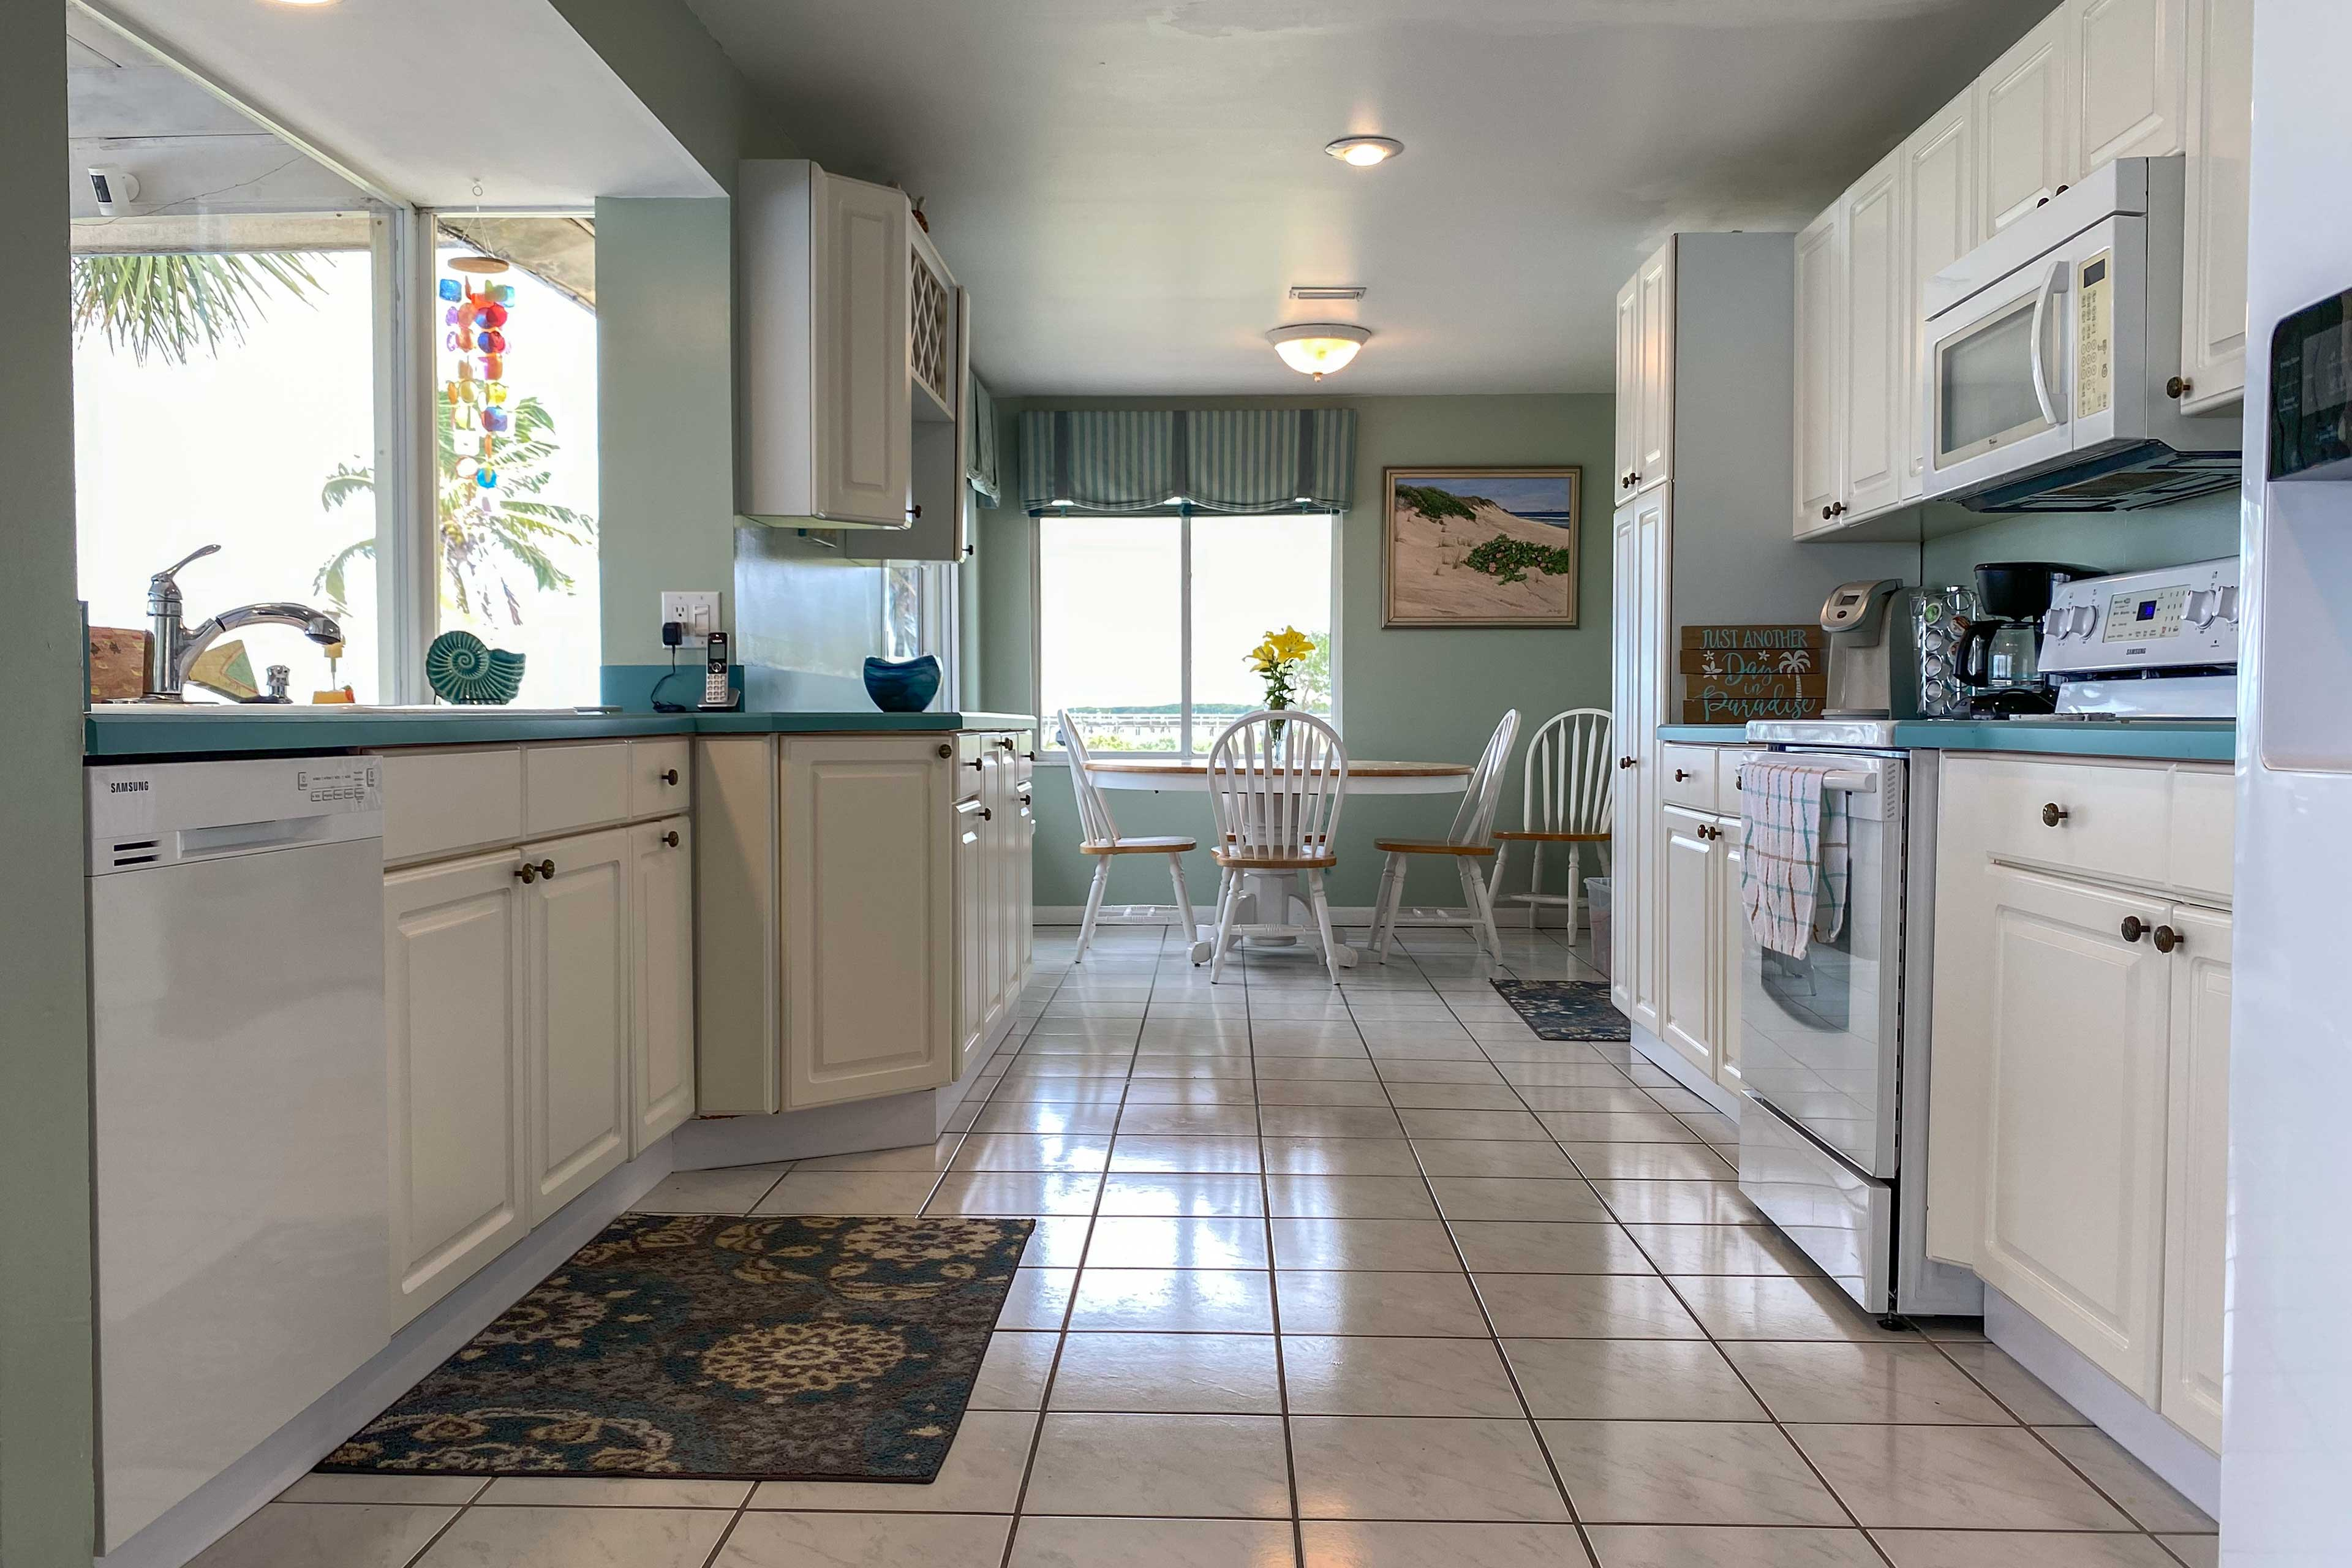 Guests love the white cabinets that line the entire kitchen.